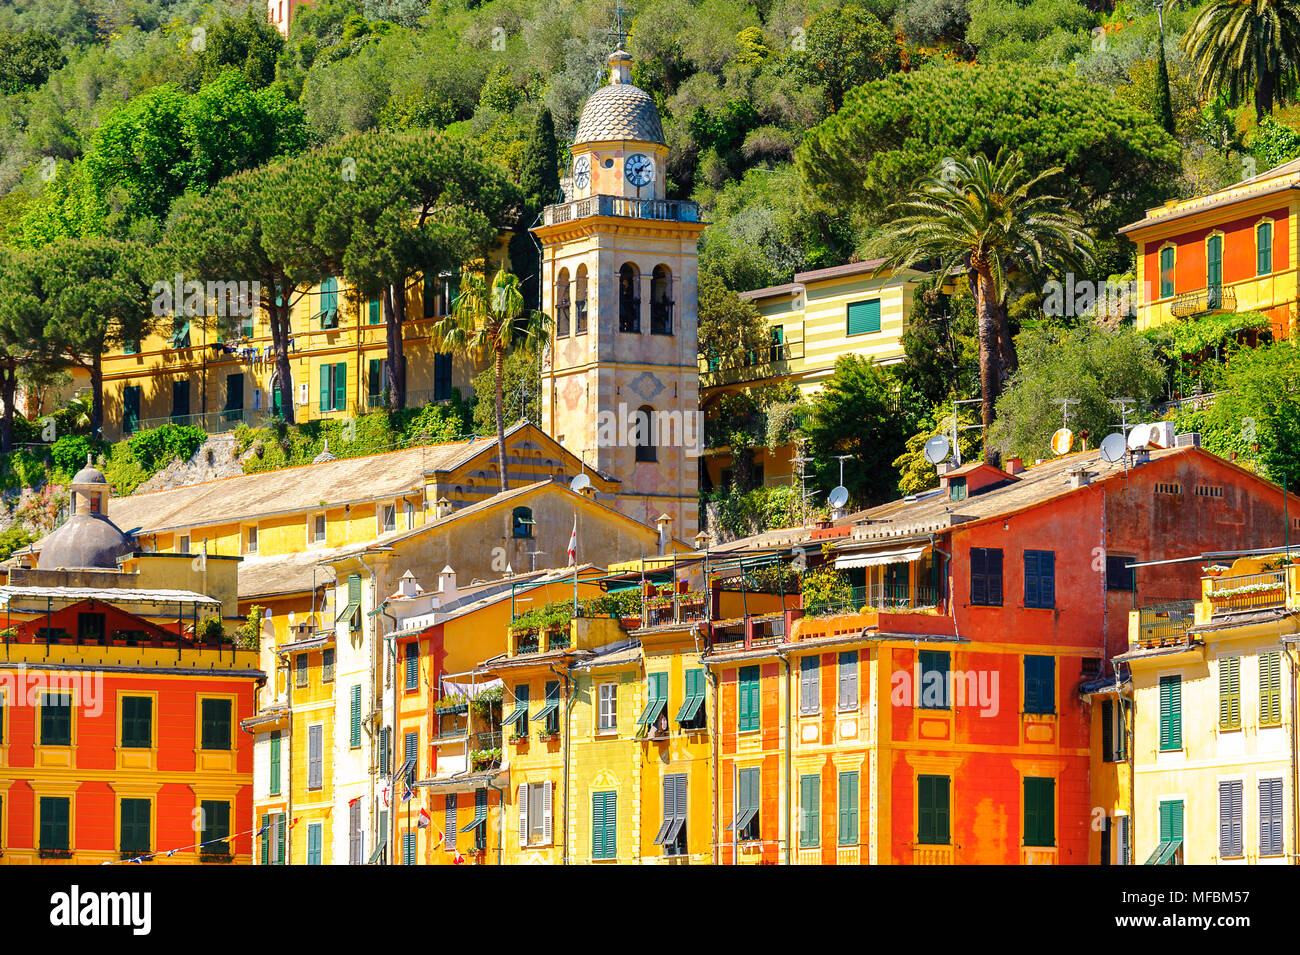 Portofino, an Italian fishing village, Genoa province, Italy. A vacation resort with a picturesque harbour and with celebrity and artistic visitors. - Stock Image